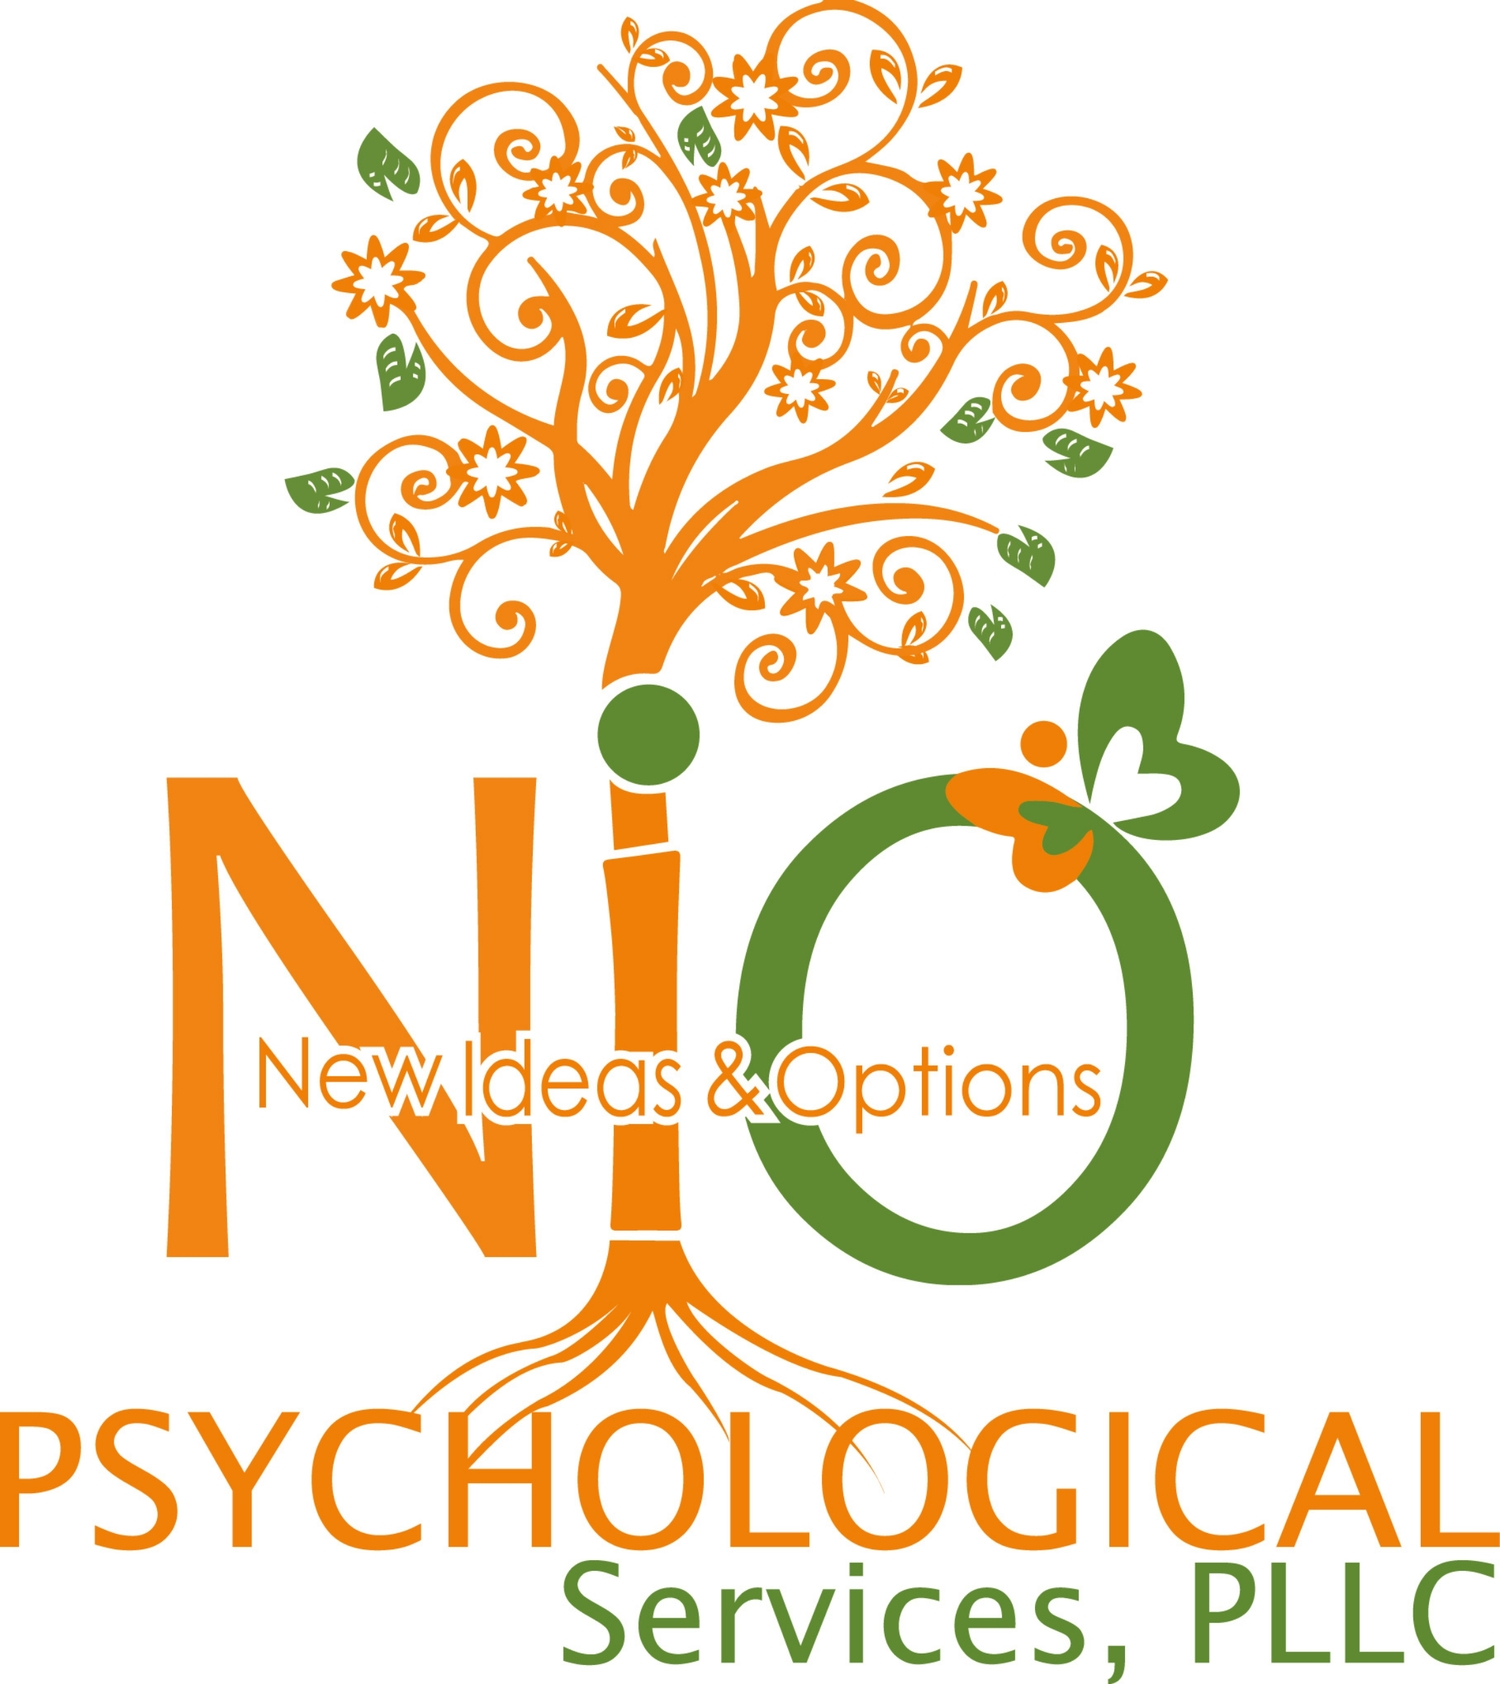 NIO Psychological Services, PLLC